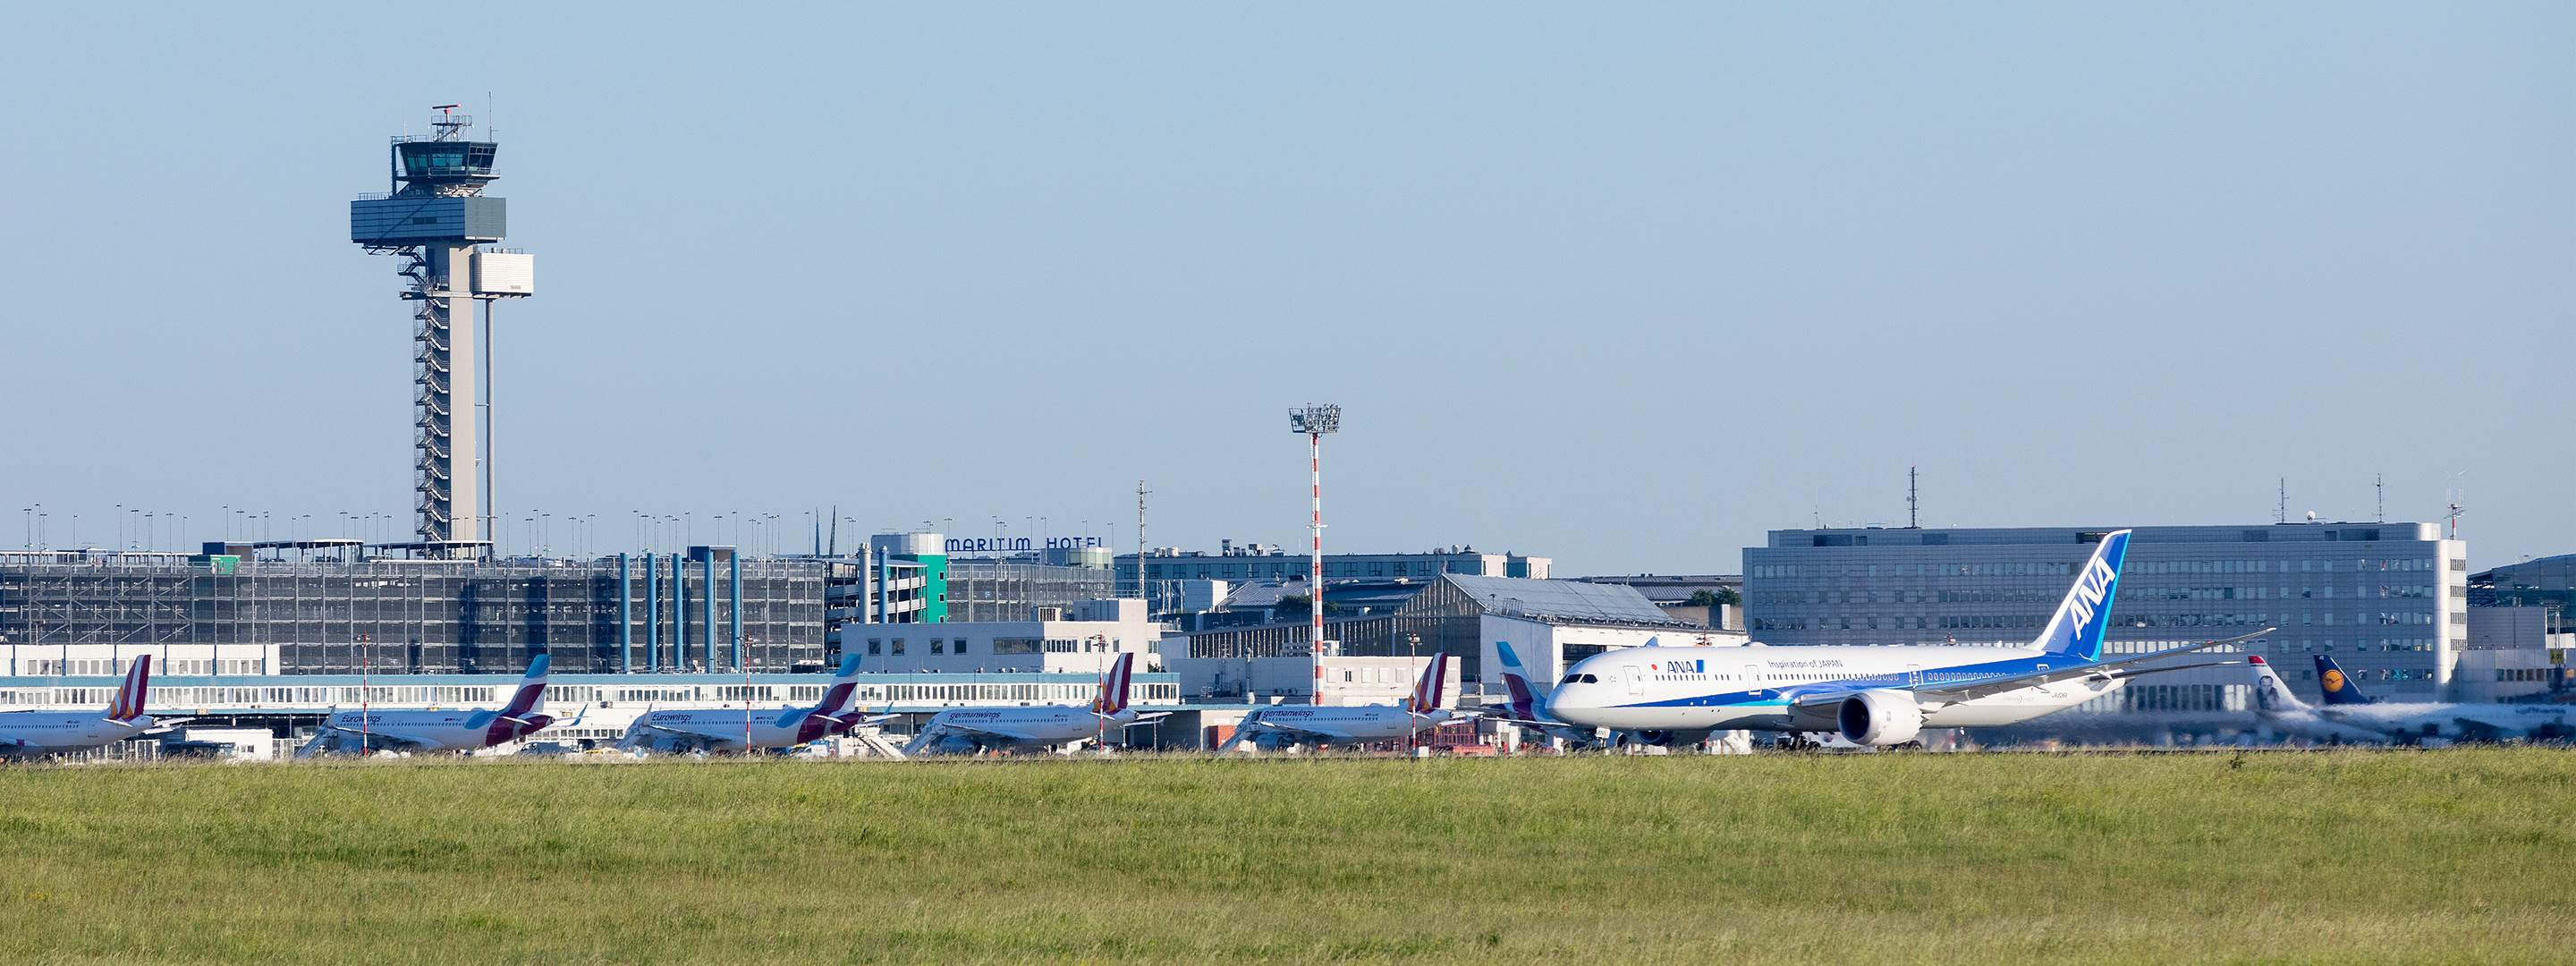 Panoramaansicht des Airports